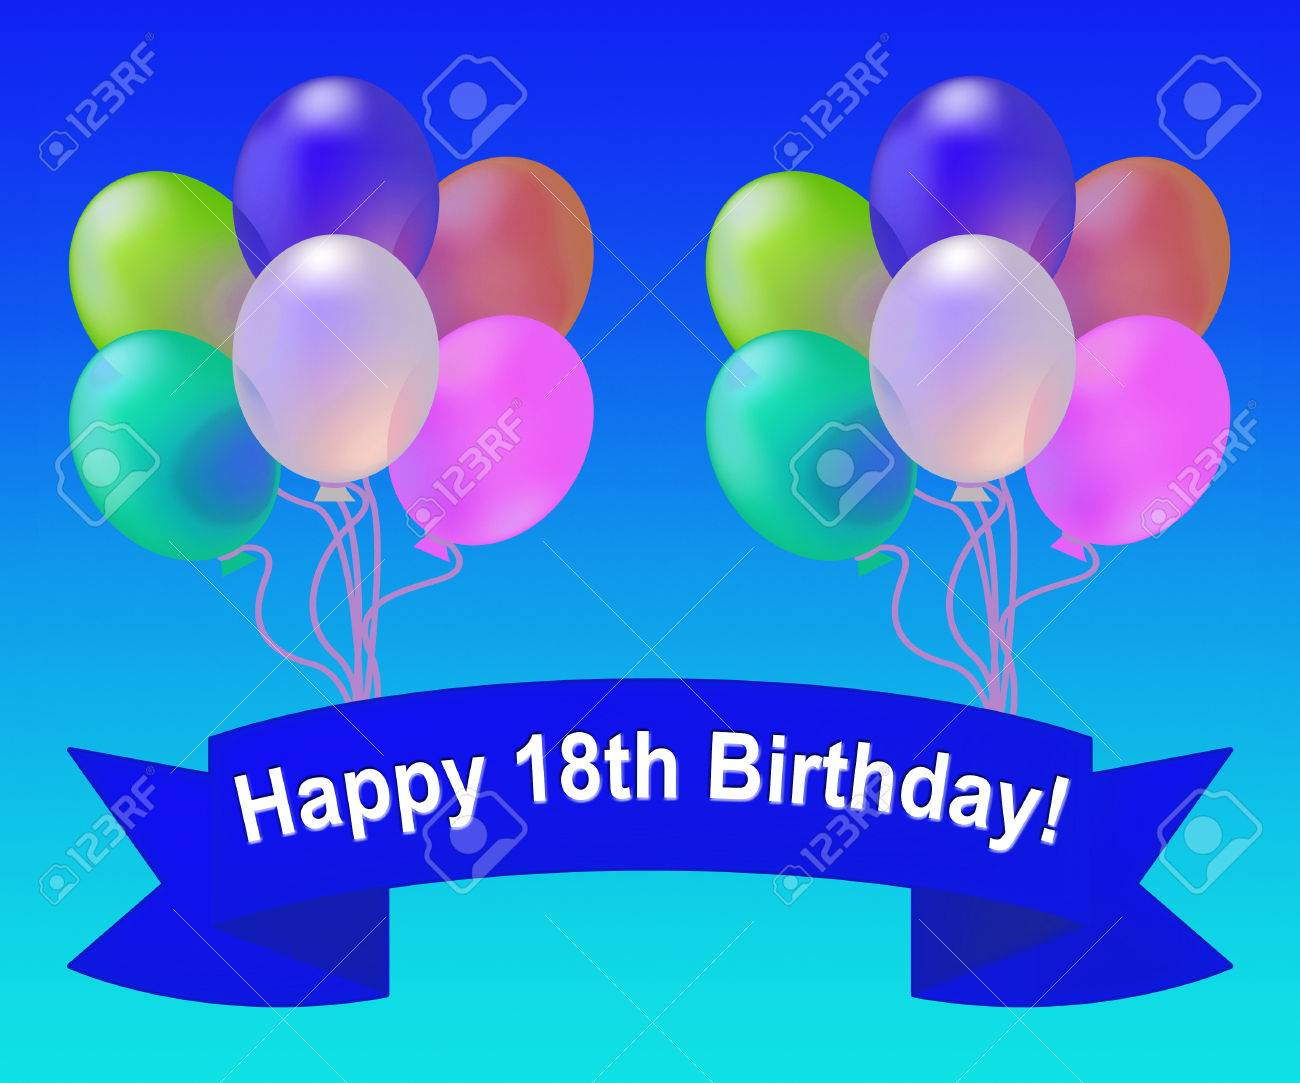 Happy Eighteenth Birthday Balloons Means 18th Party Celebration 3d Illustration Stock